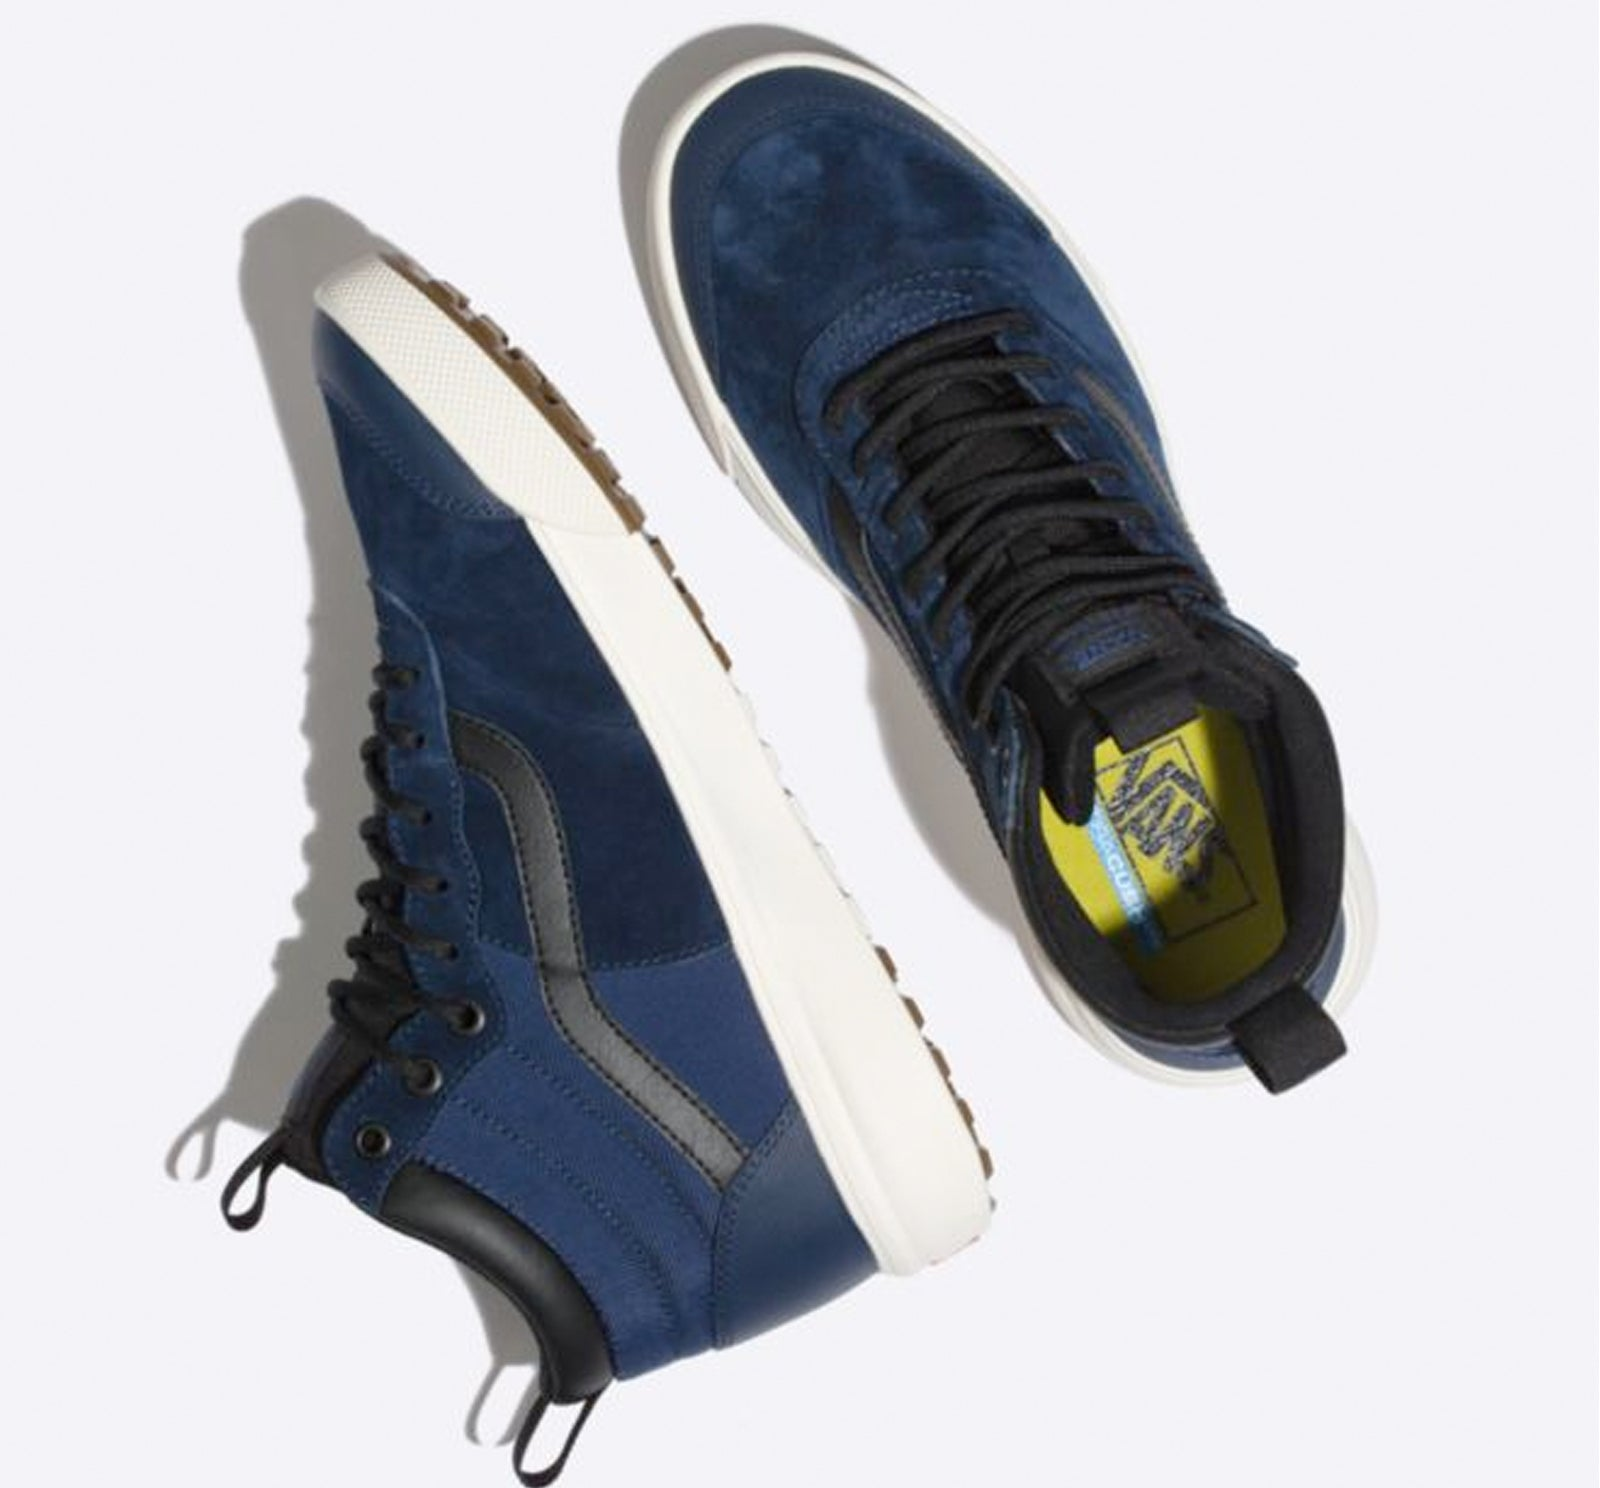 Vans UltraRange Hi MTE Men's Shoes